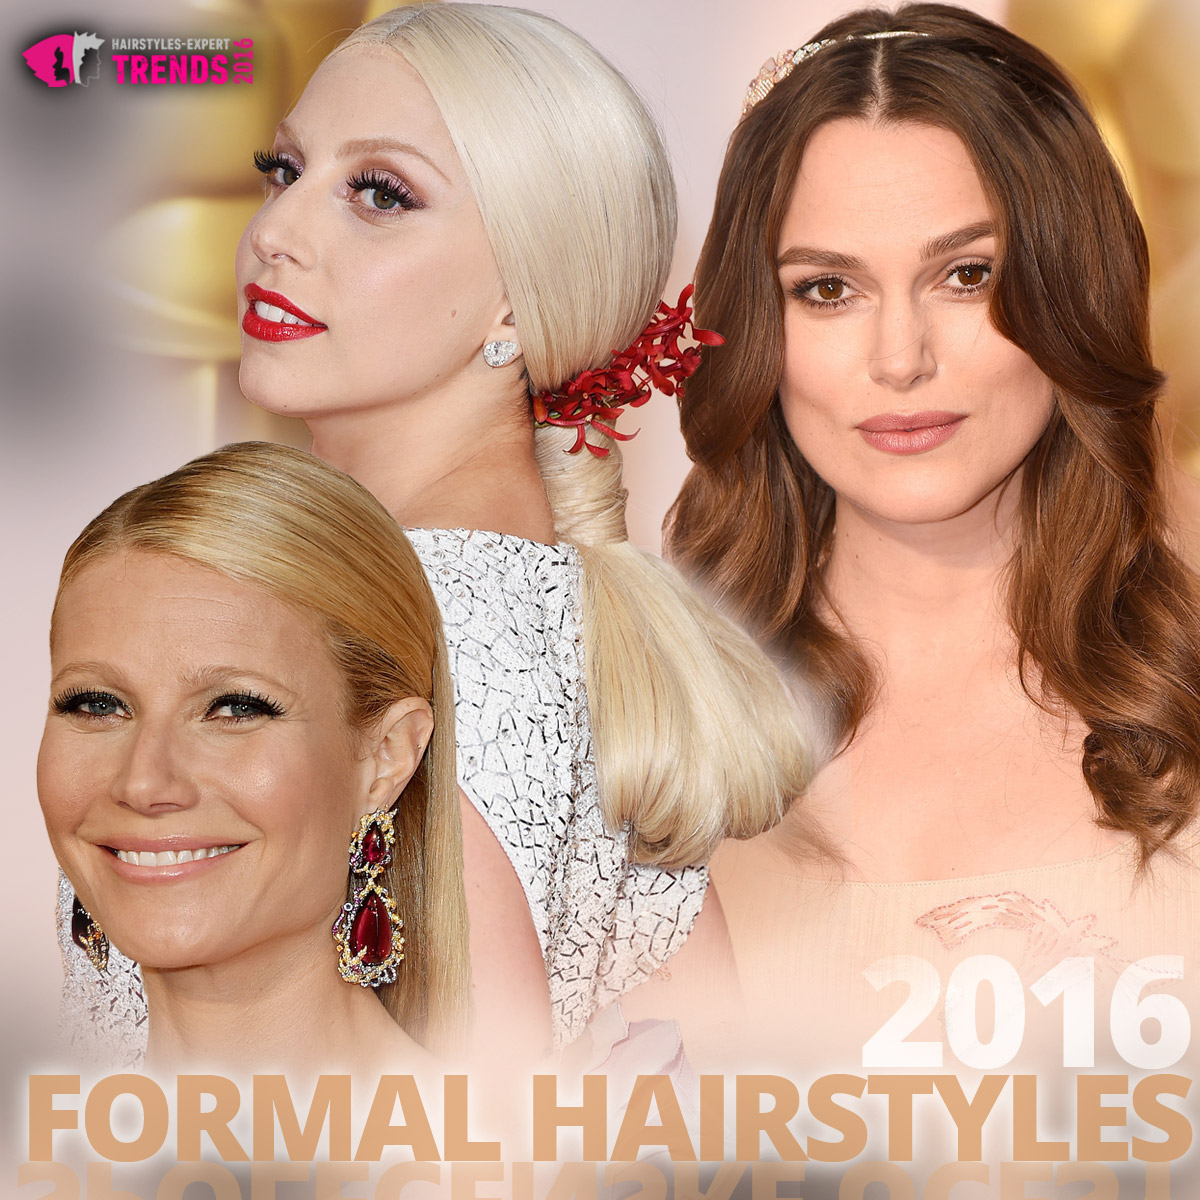 Formal hairstyles 2016 inspired by the red carpet celebrities.